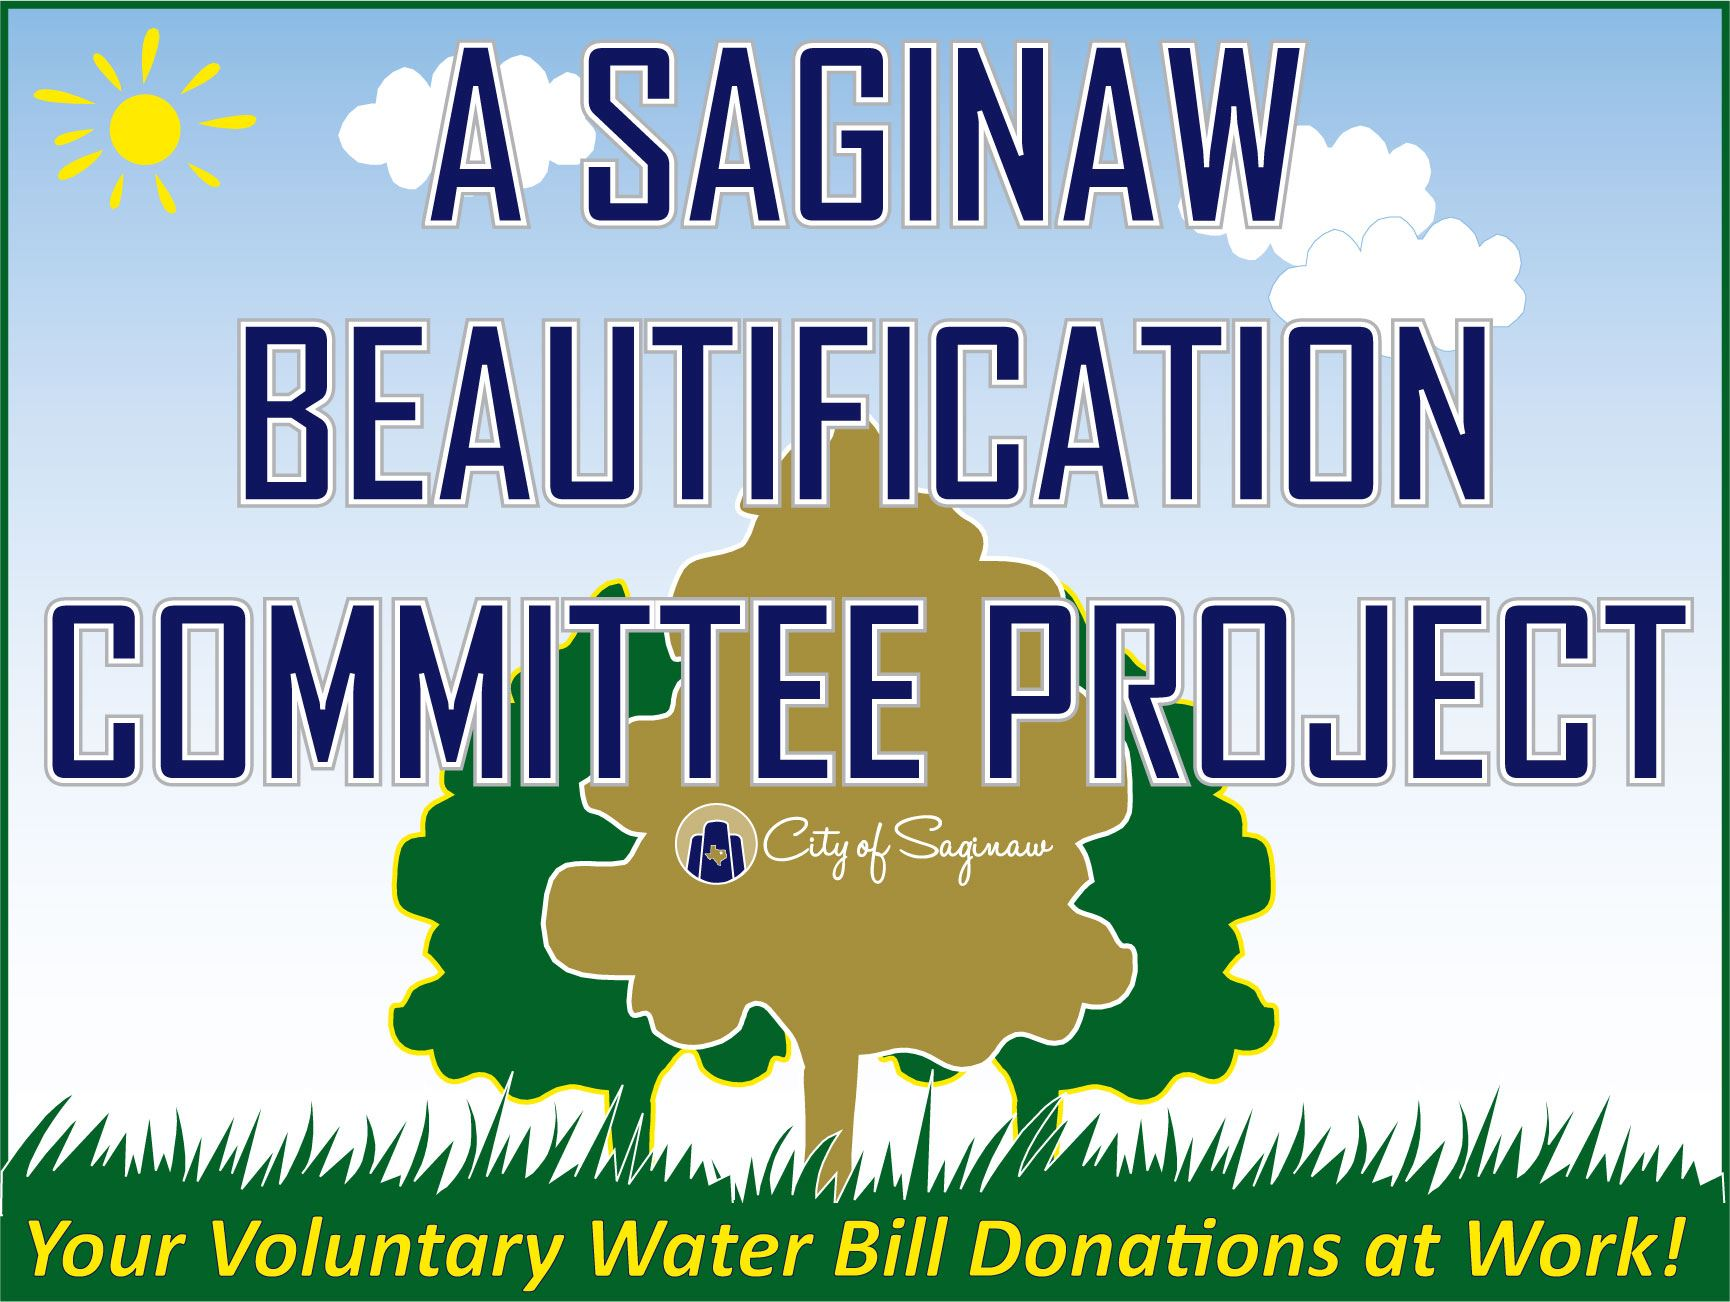 A Saginaw Beautification Committee Project